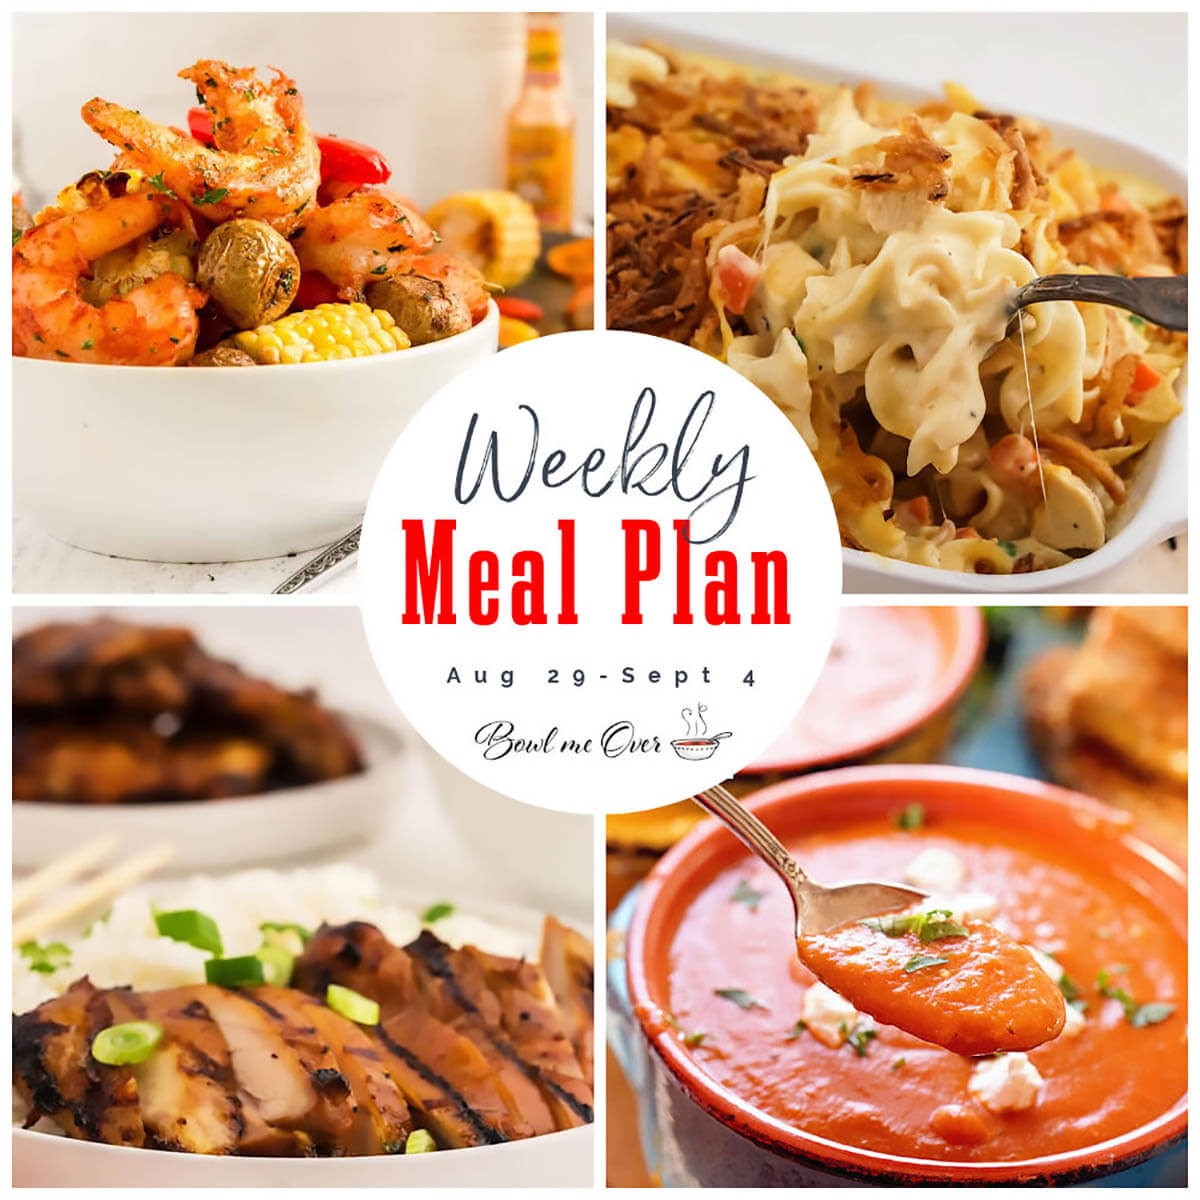 Weekly Meal Plan 33 photo collage with print overlay.